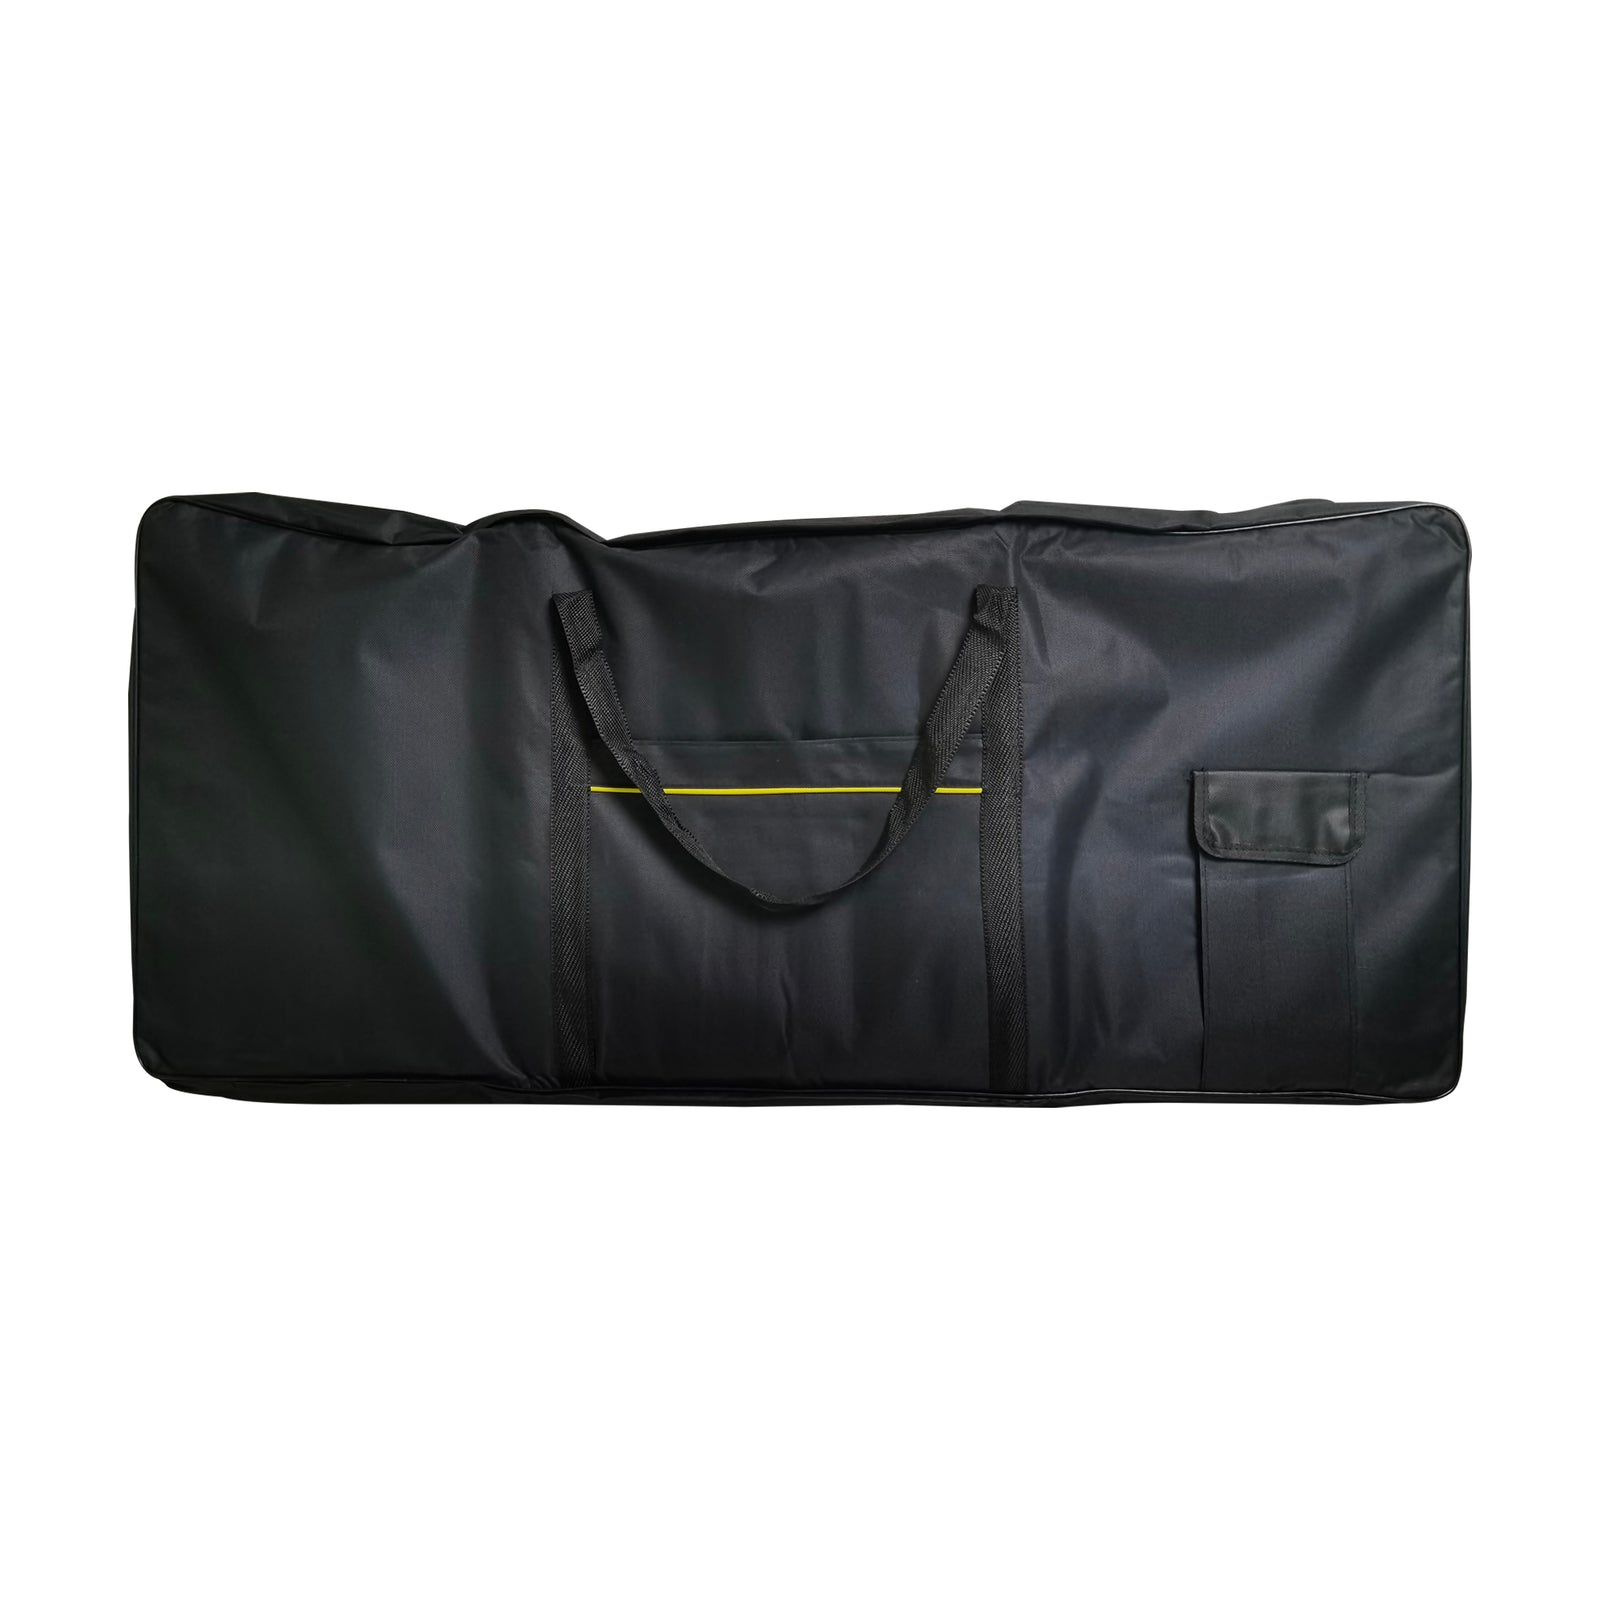 61 Keys Keyboard Bag